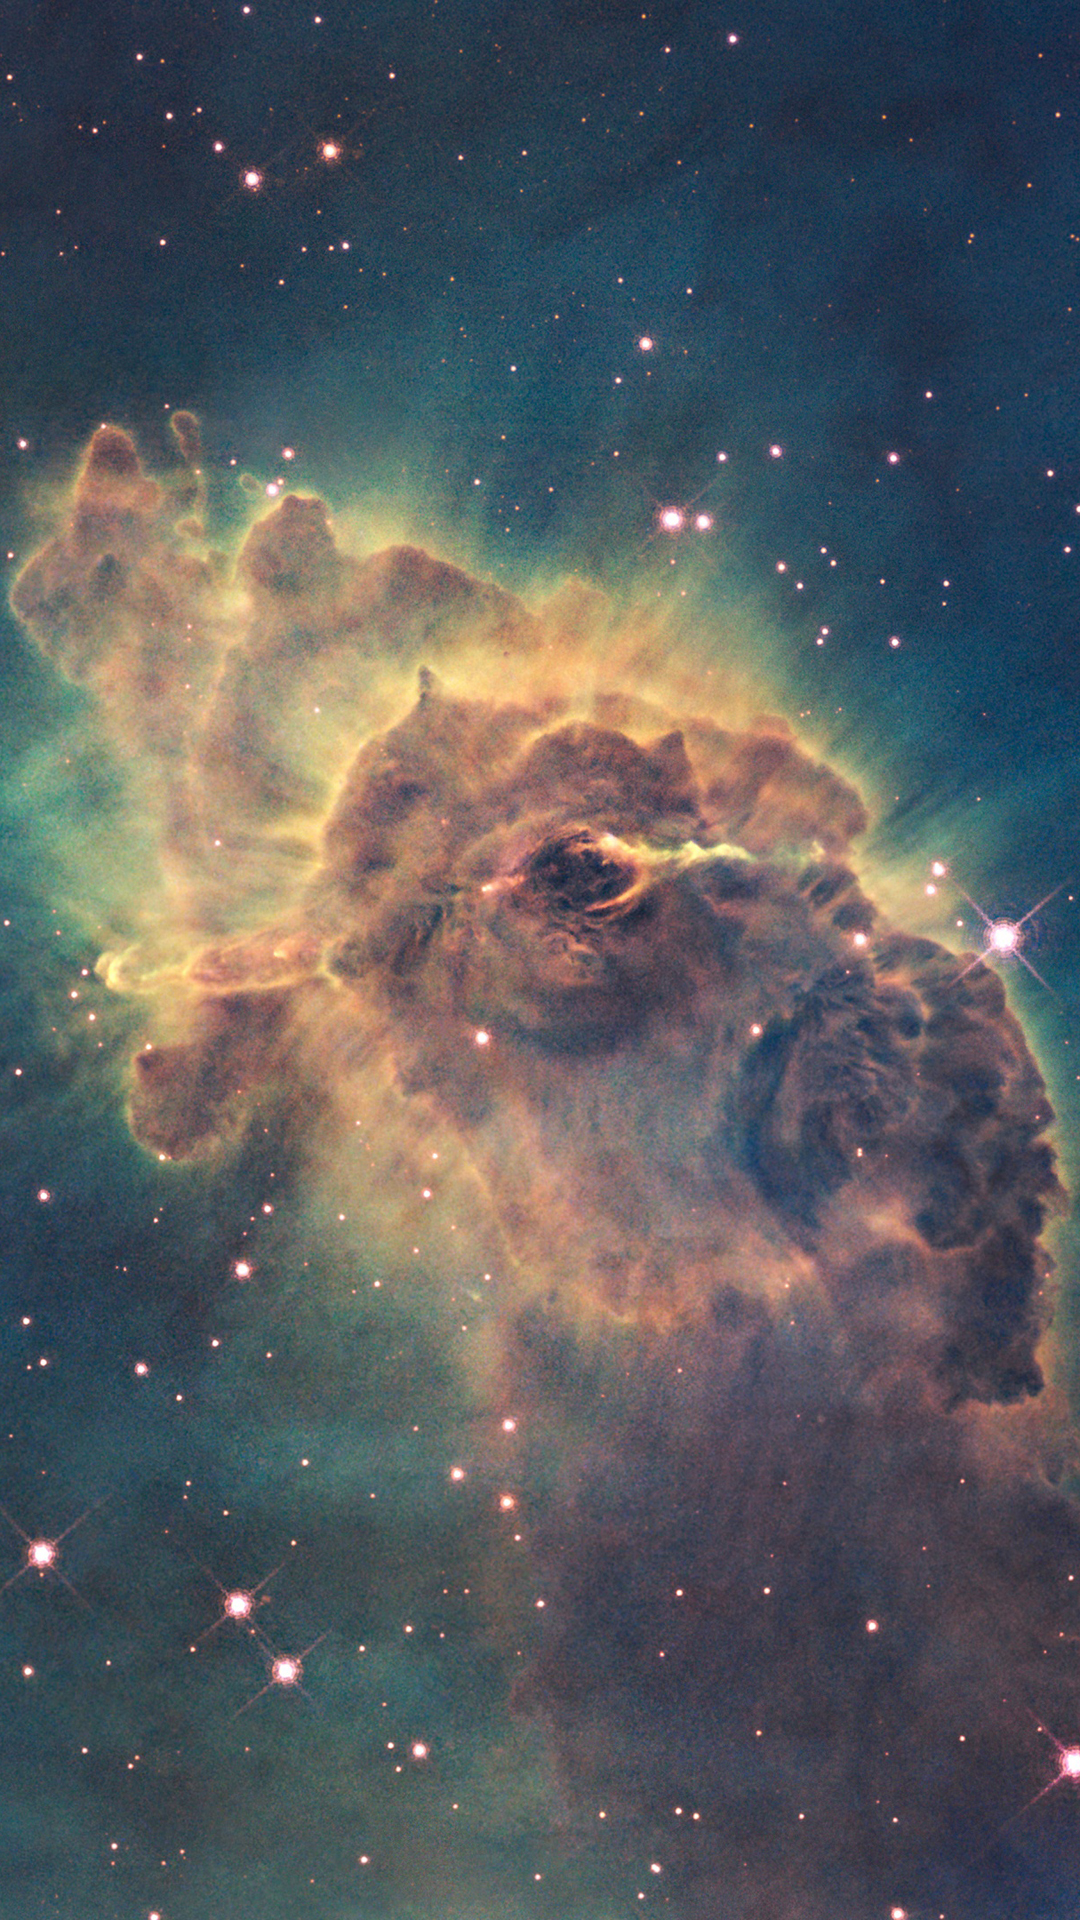 carina nebula - best htc one wallpapers, free and easy to download